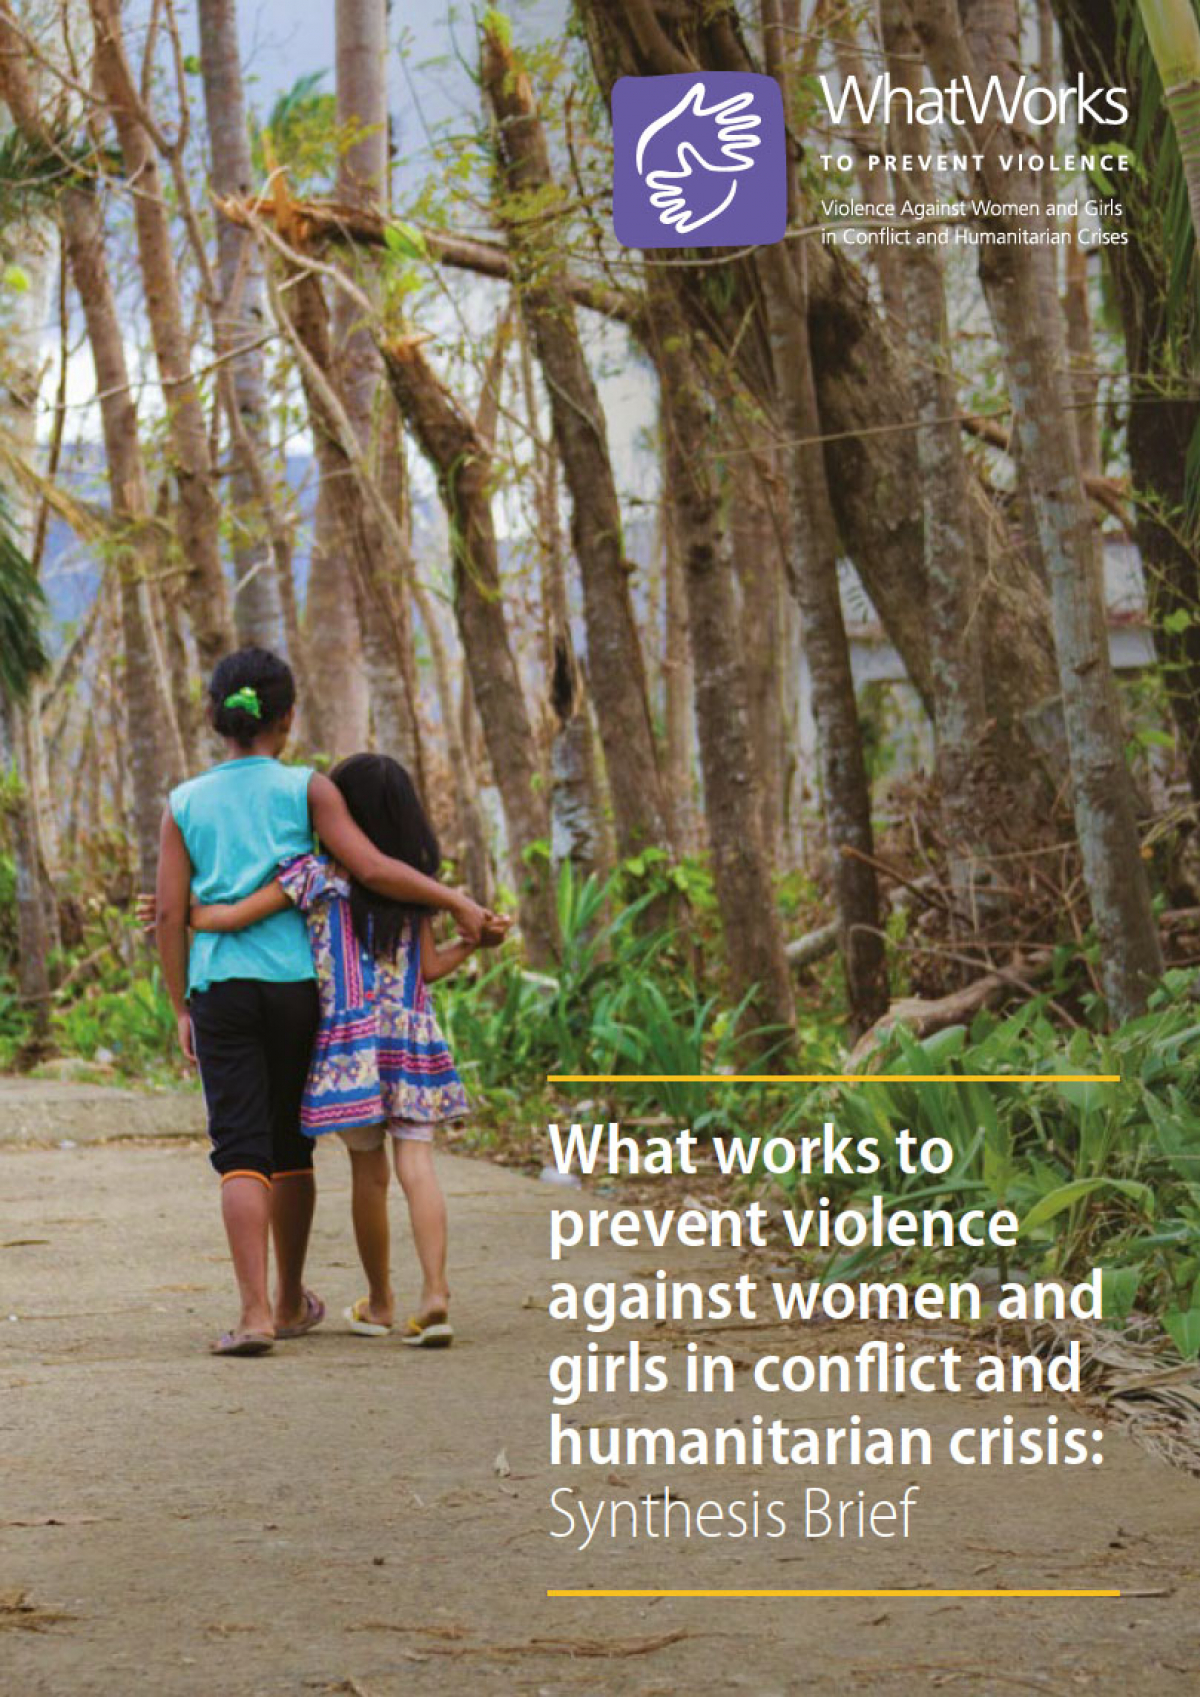 What works to prevent violence against women and girls in conflict and humanitarian crisis: Synthesis Brief